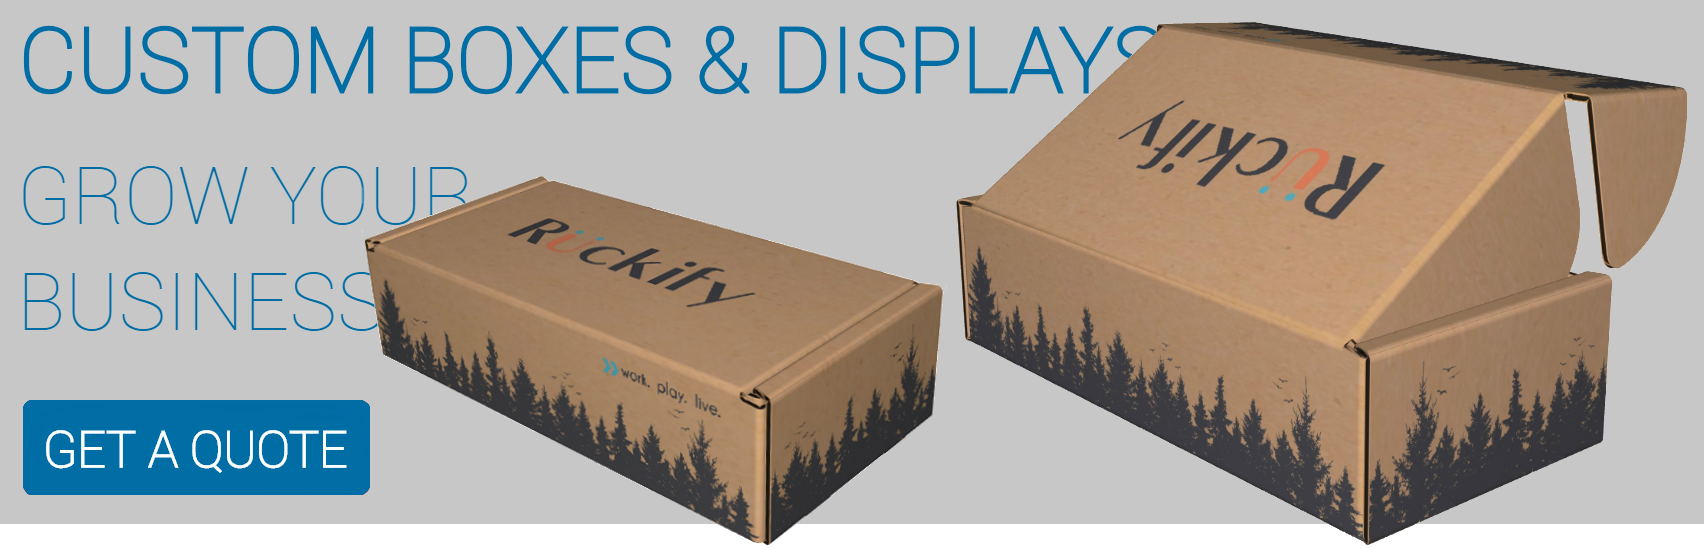 Corrugated boxes shipping packaging supplies whitebird custom boxes displays reheart Gallery